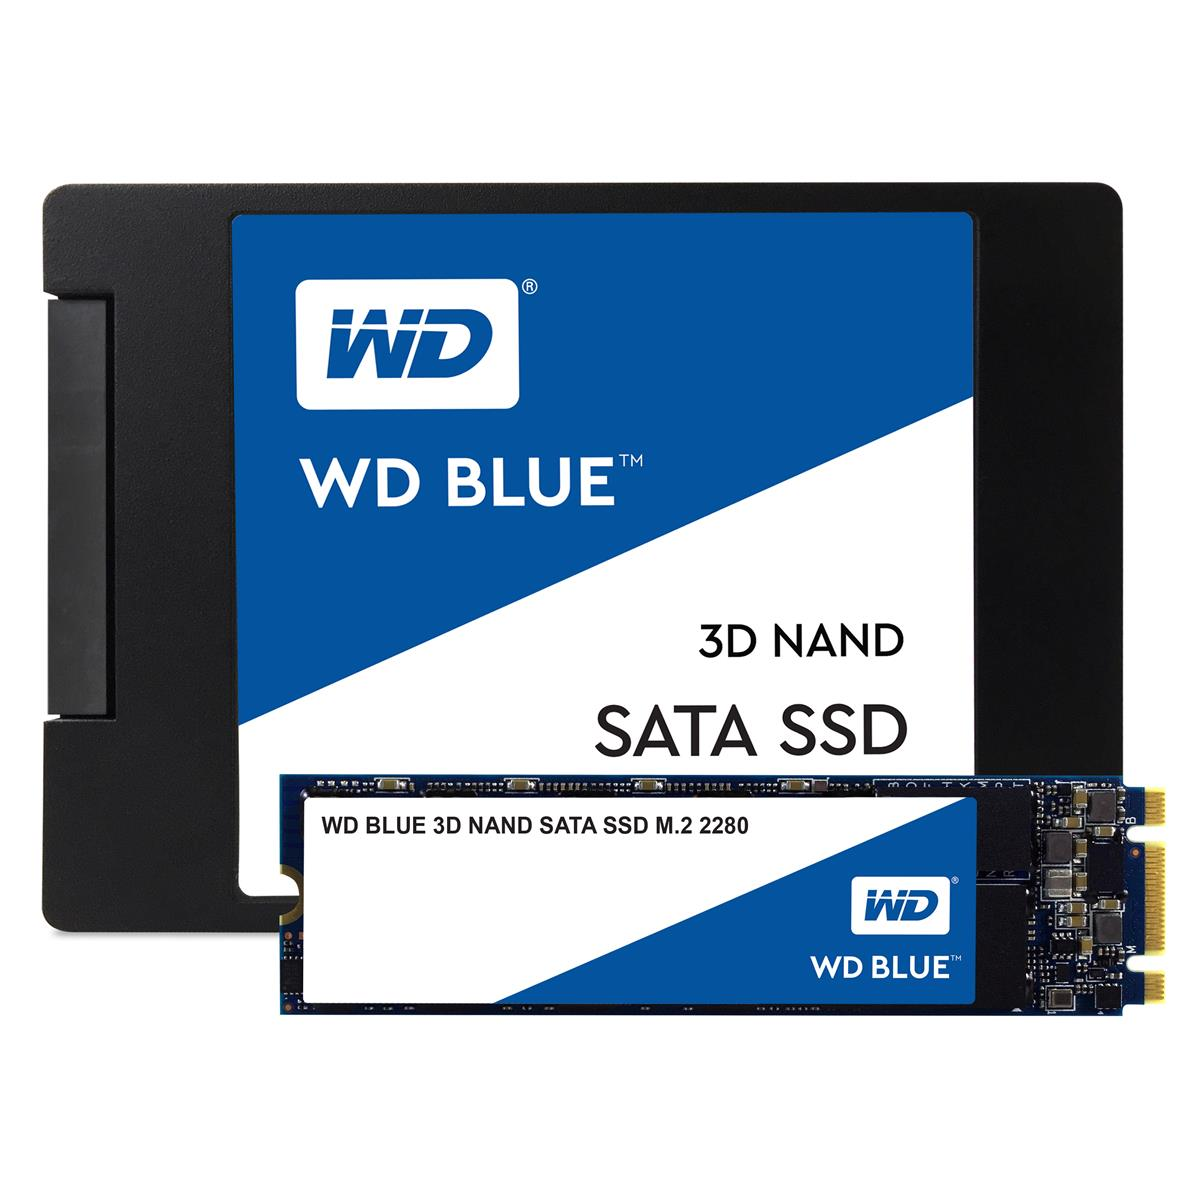 WD Blue (1TB) 3D NAND SATA M.2 Solid State Drive